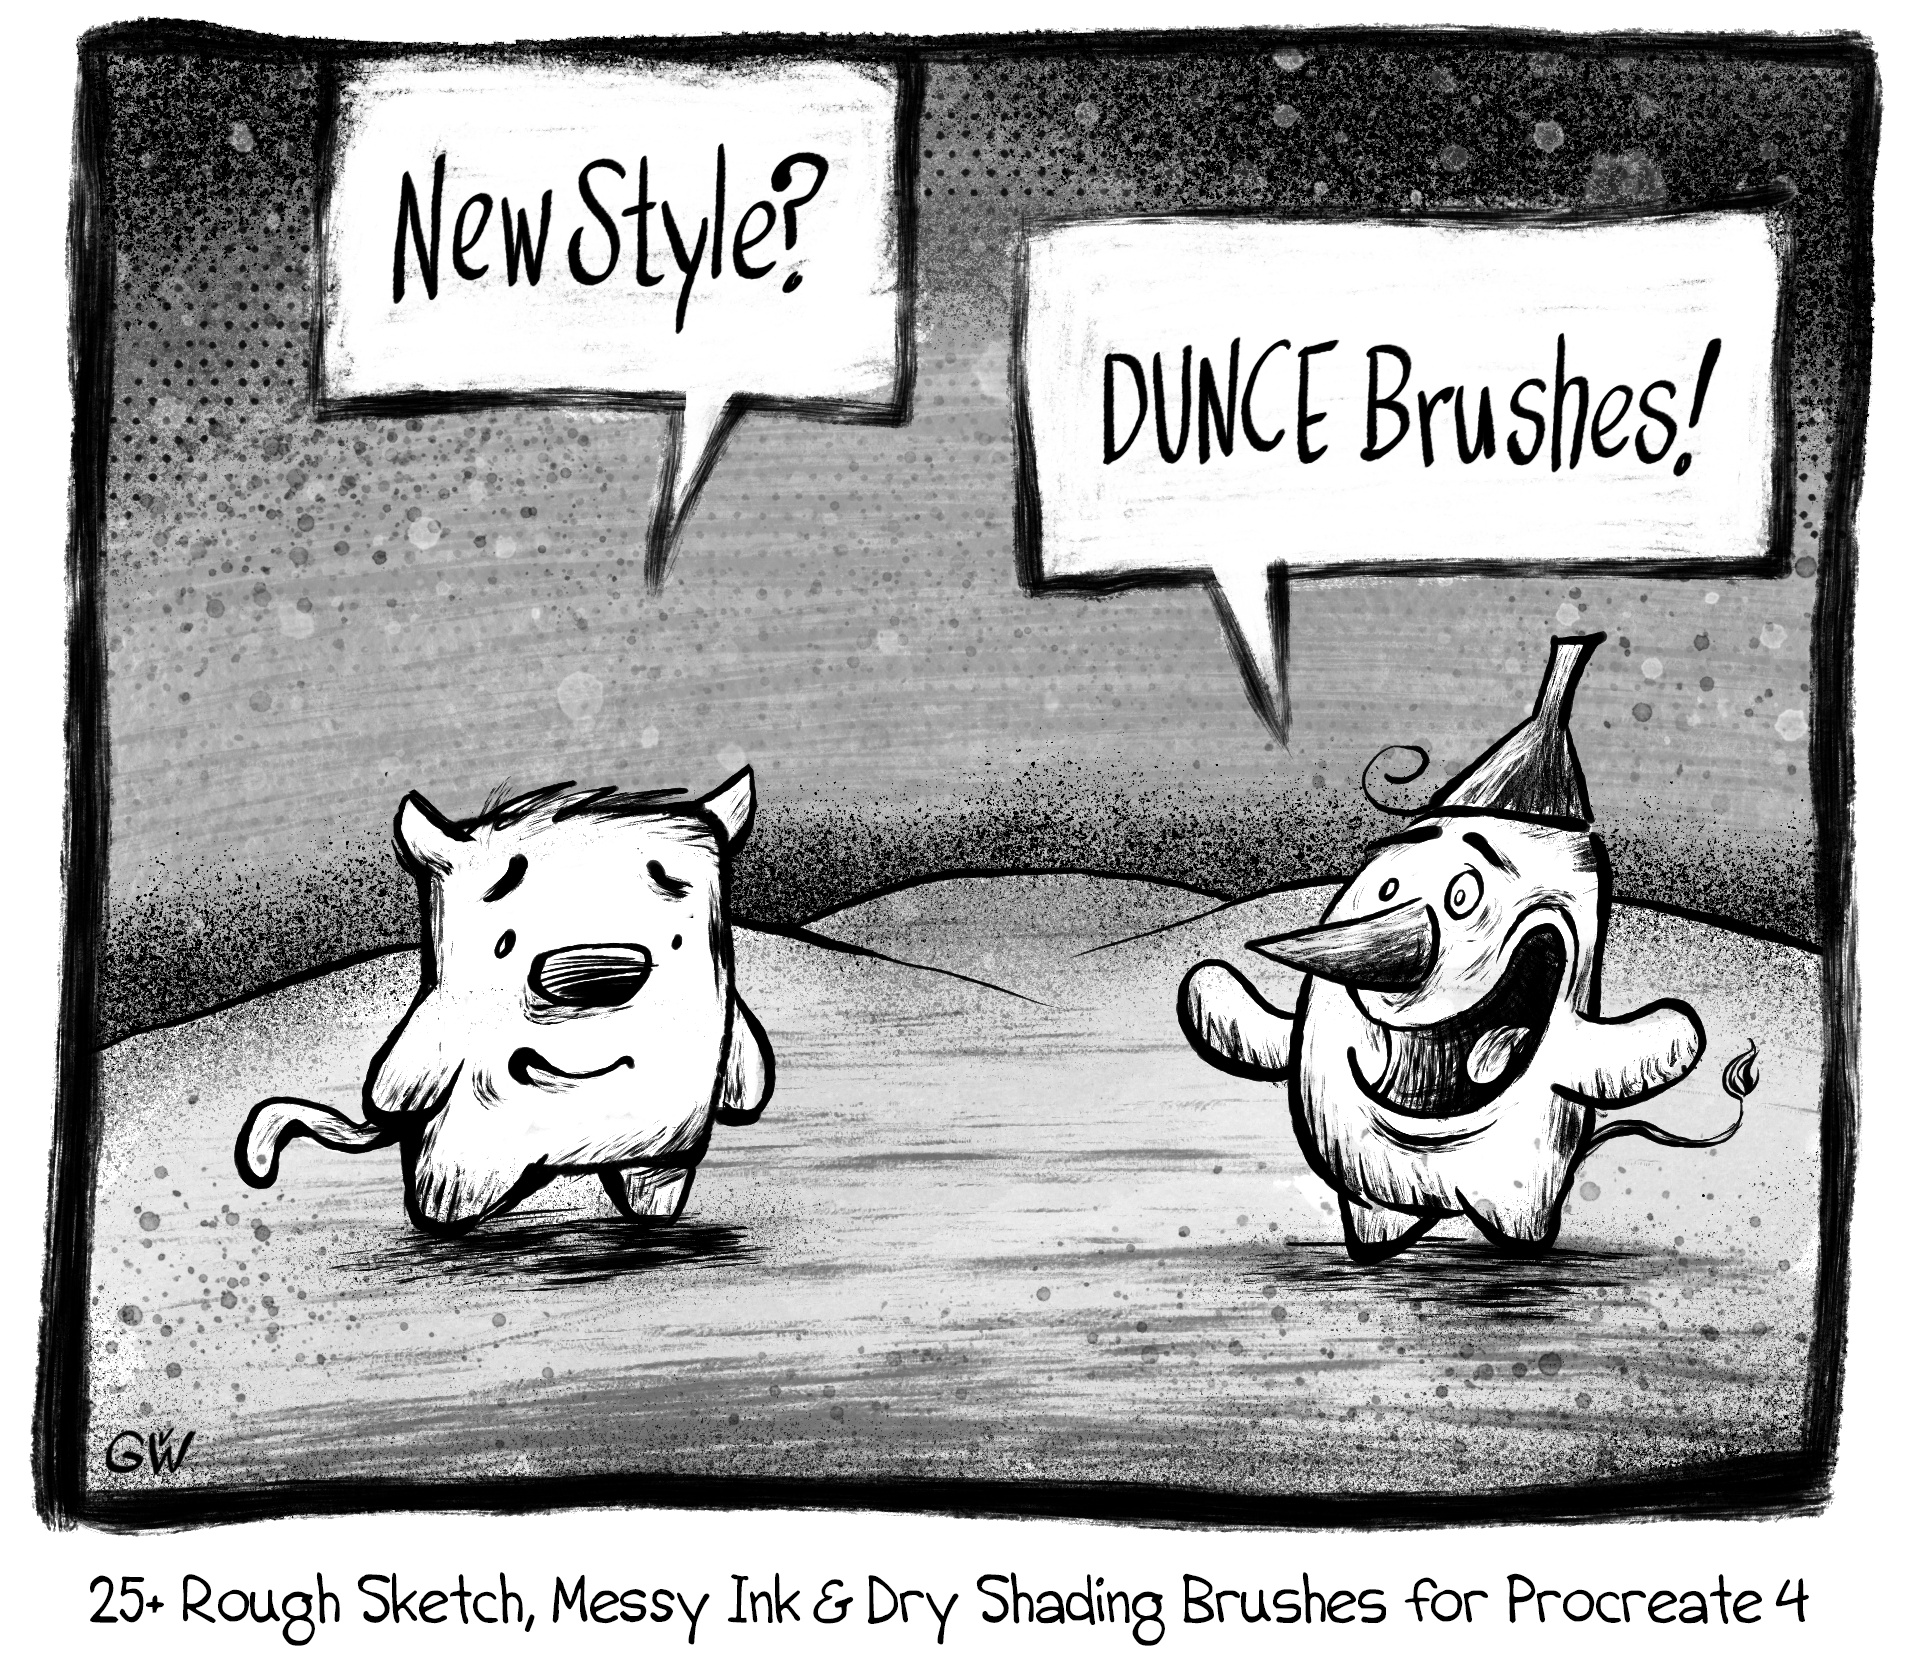 JensK's DUNCE Brushes: 25+ Rough Sketch, Messy Ink & D - Georg's